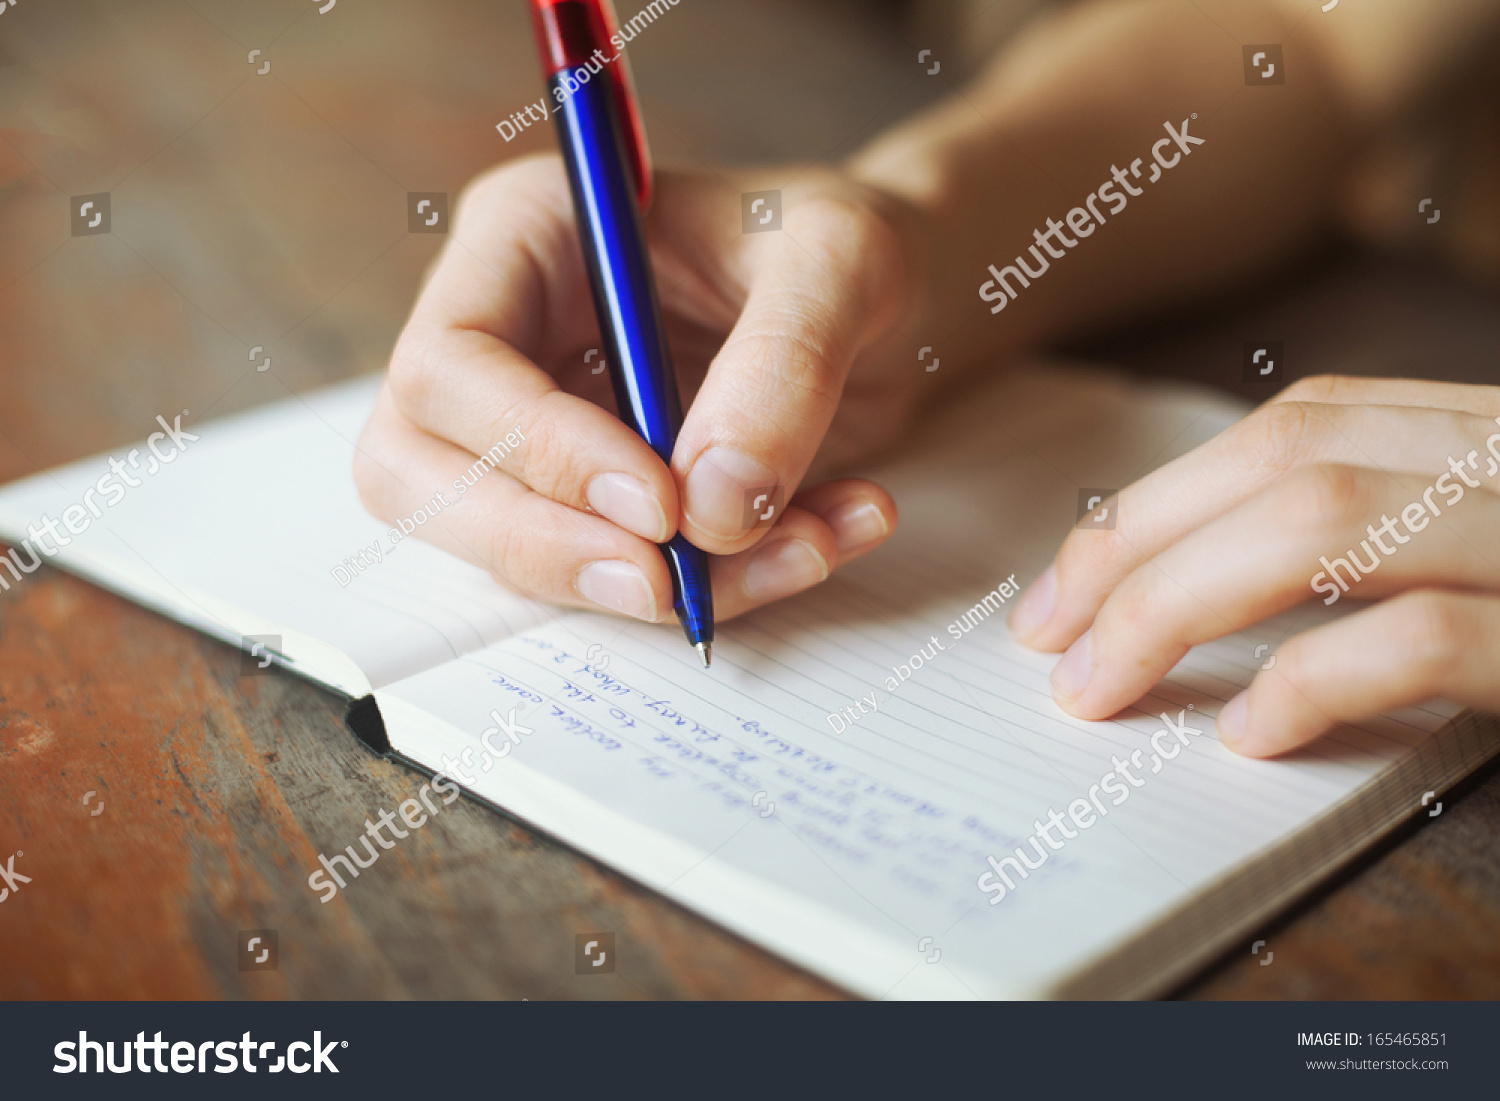 business capstone reflection paper Our academic writers help students with writing capstone papers for master's   academic disciplines such as science, art, business and all other disciplines.